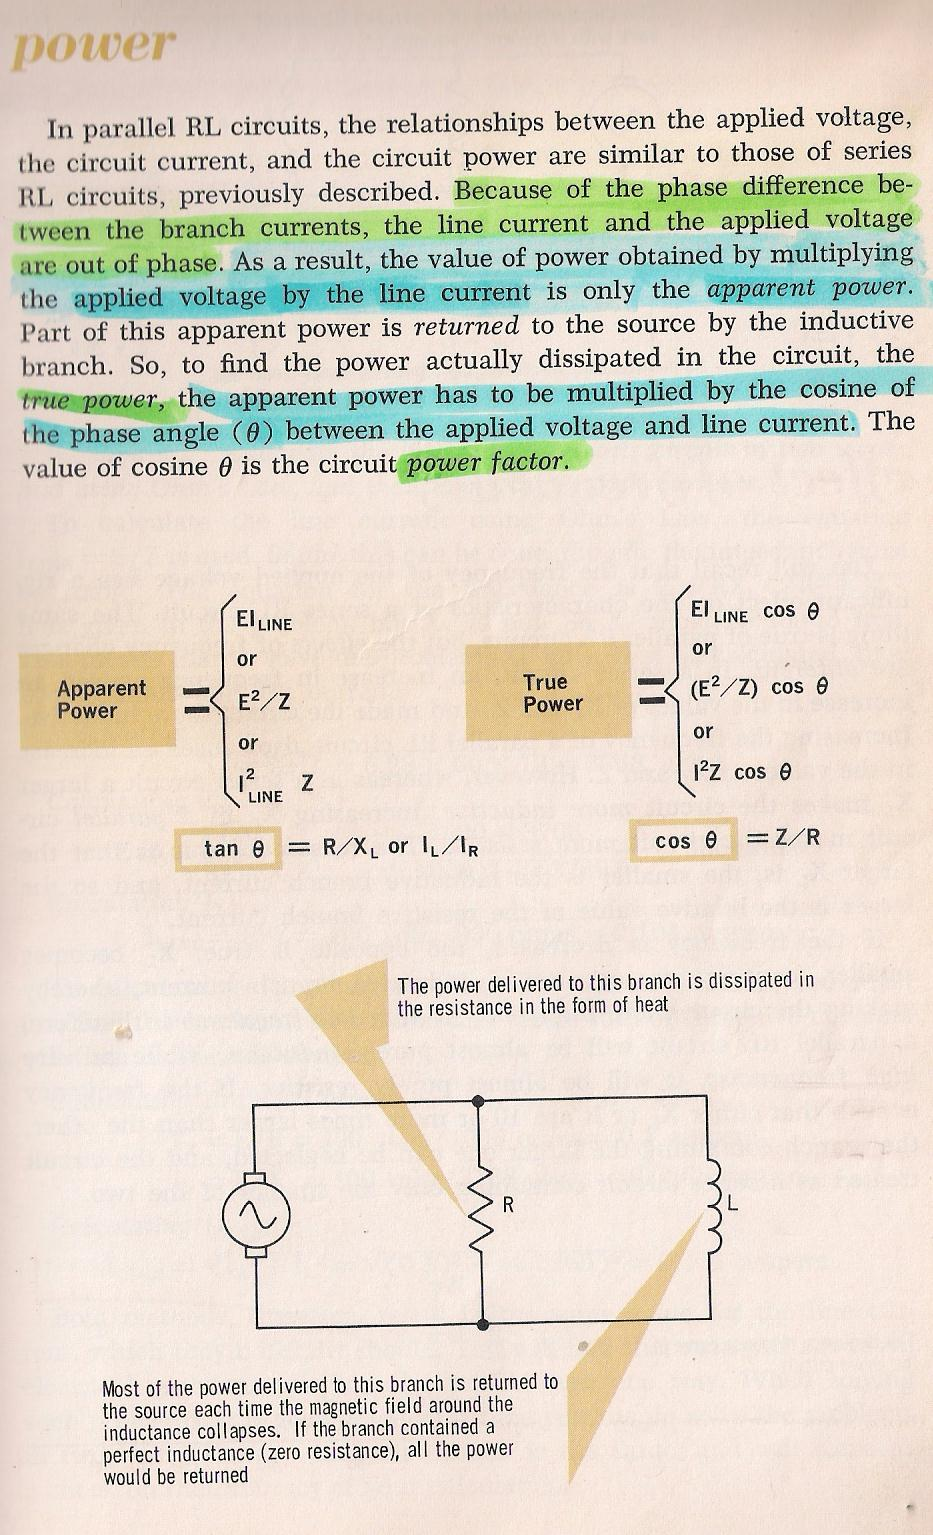 Rlc Circuits Series Rc Or Rl Circuit Into An Equivalent Parallel 021 Power By Larry E Gugle K4rfe